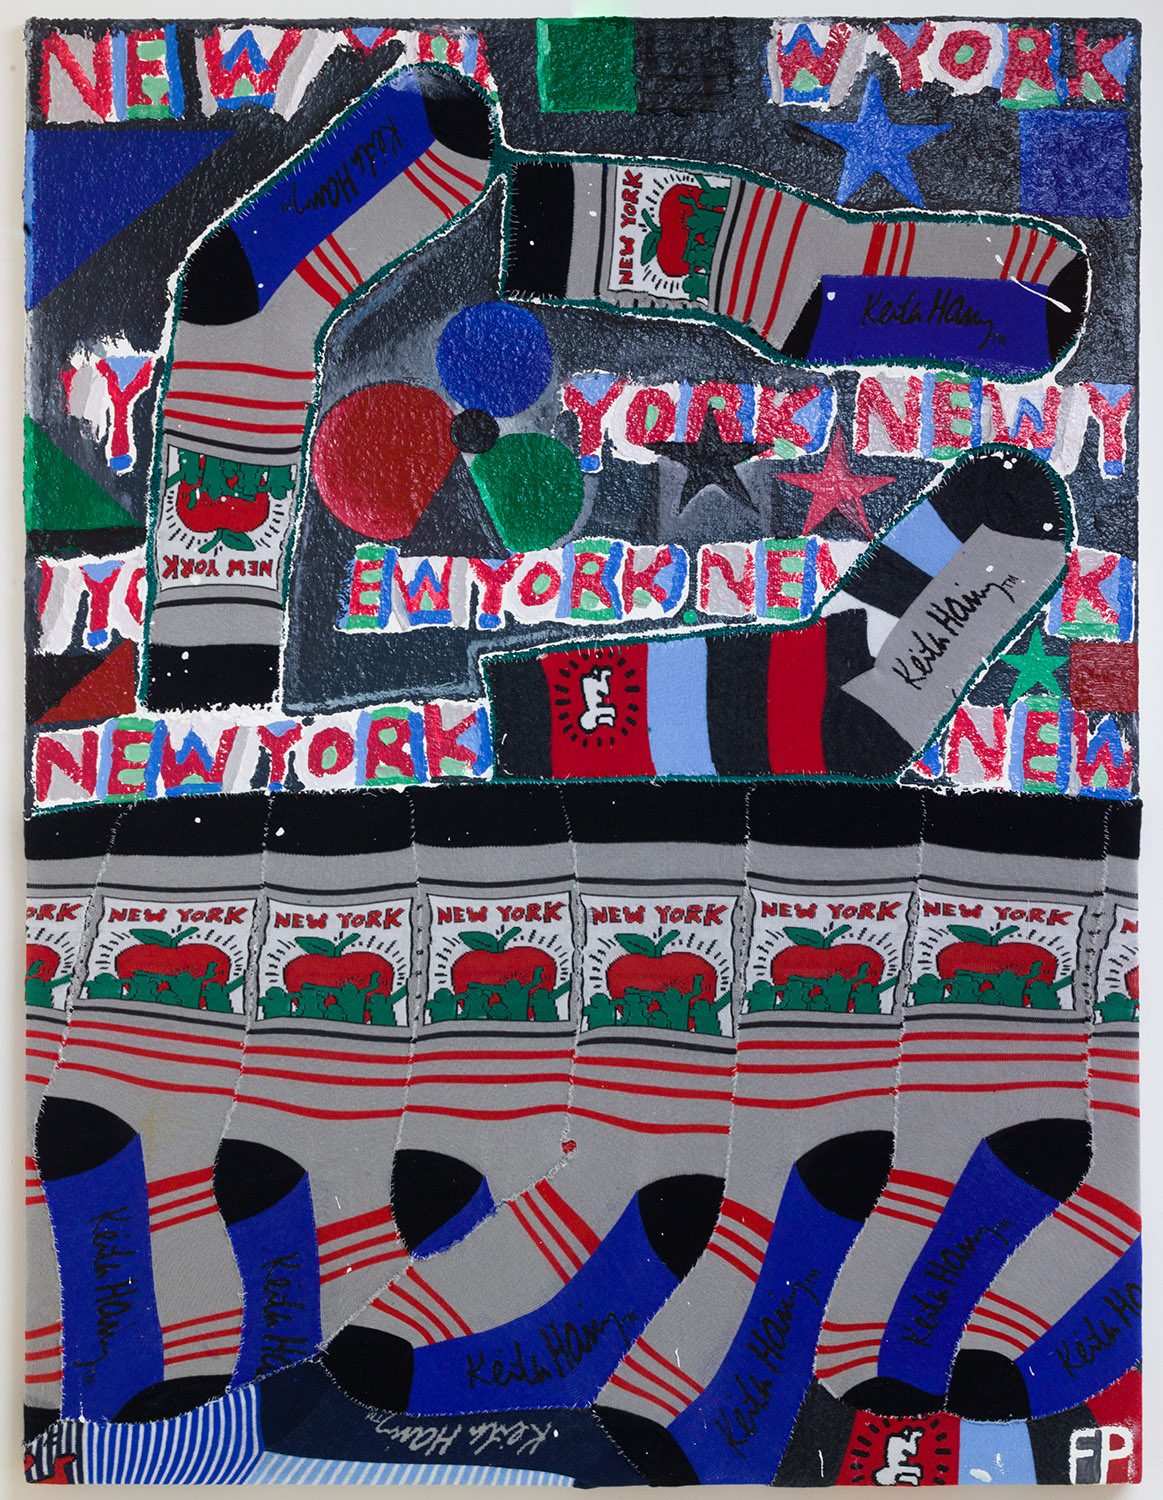 New York City Socks , 2019, oil paint, sand, glitter, and t-shirts on canvas, 42 x 32 in/106.68 x 81.28 cm